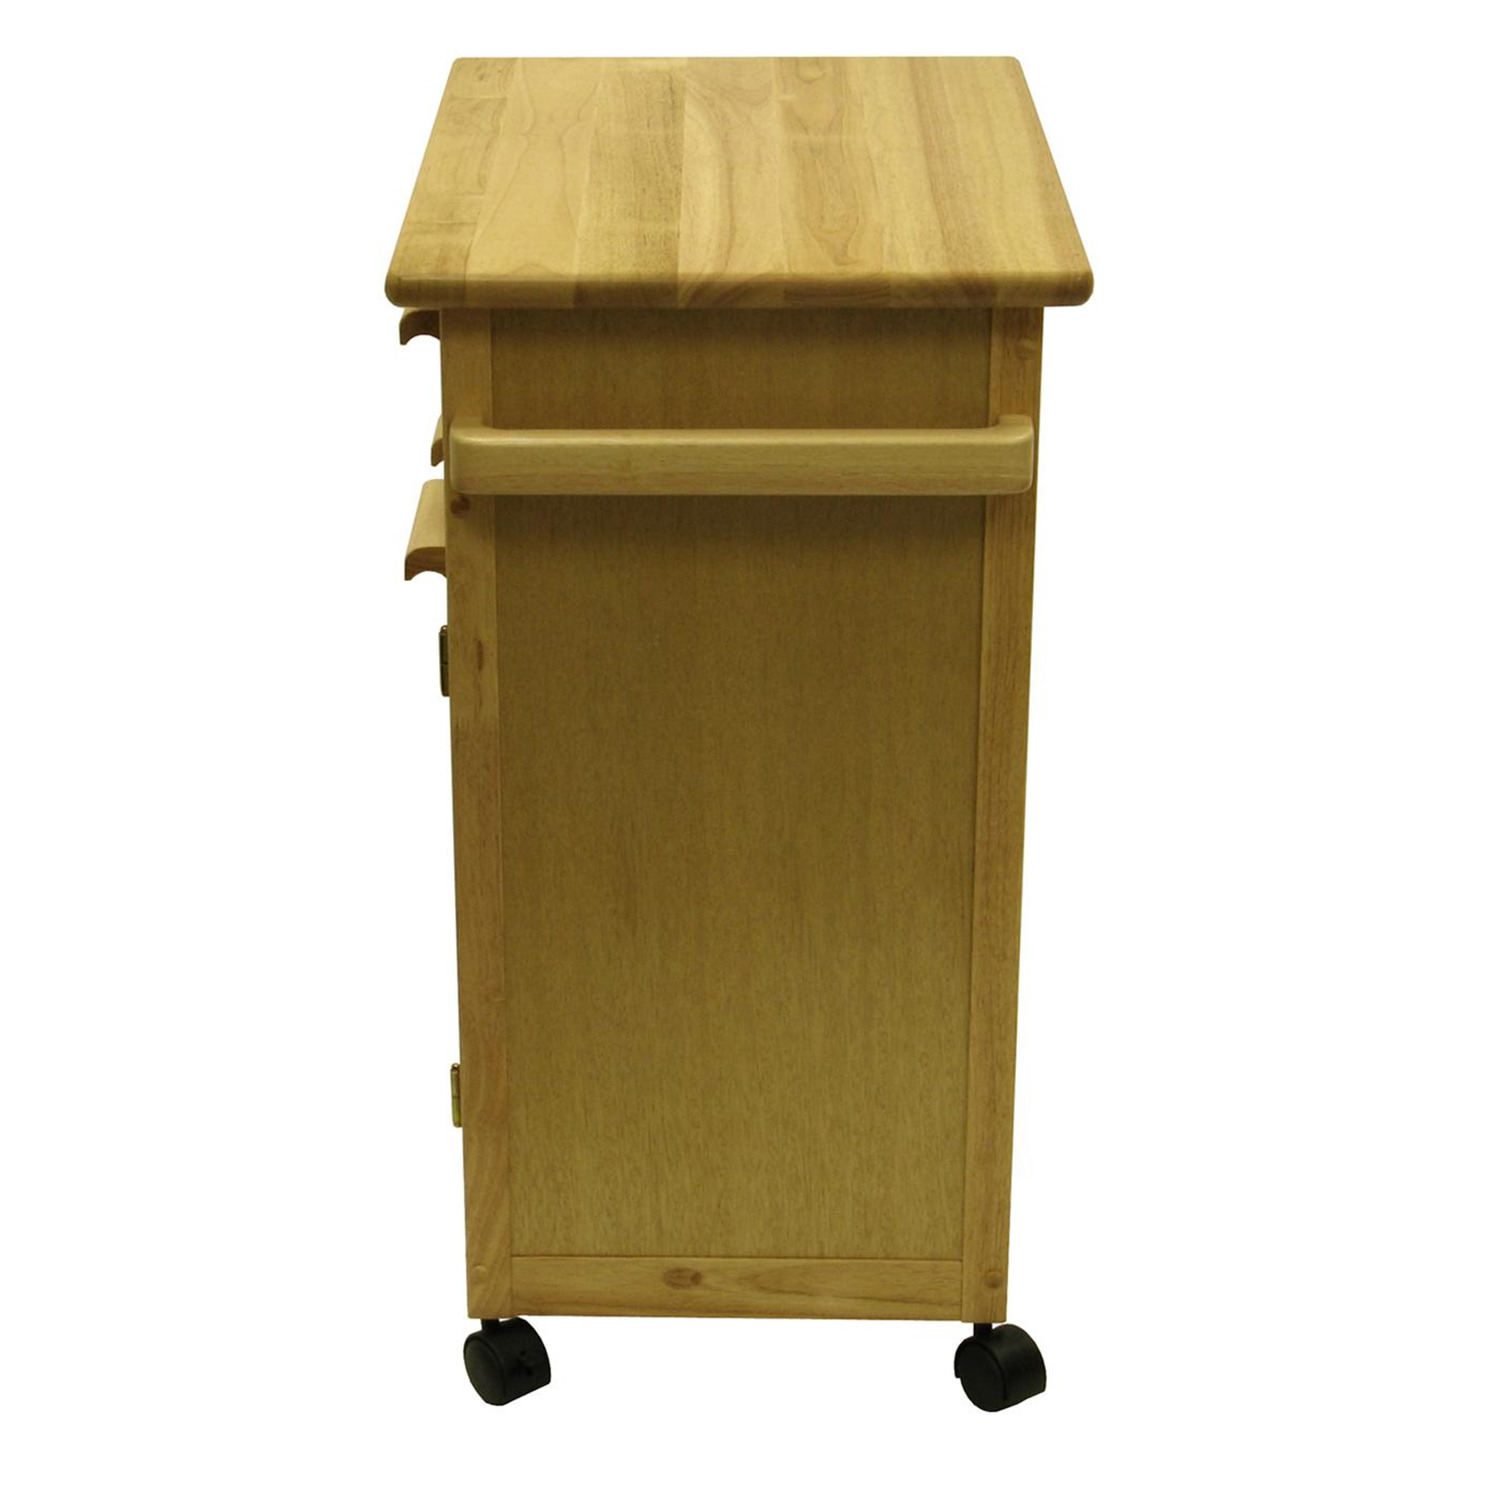 Kitchen Cart With Drawers: Kitchen Cart With One Drawer, Cabinet - $237.99